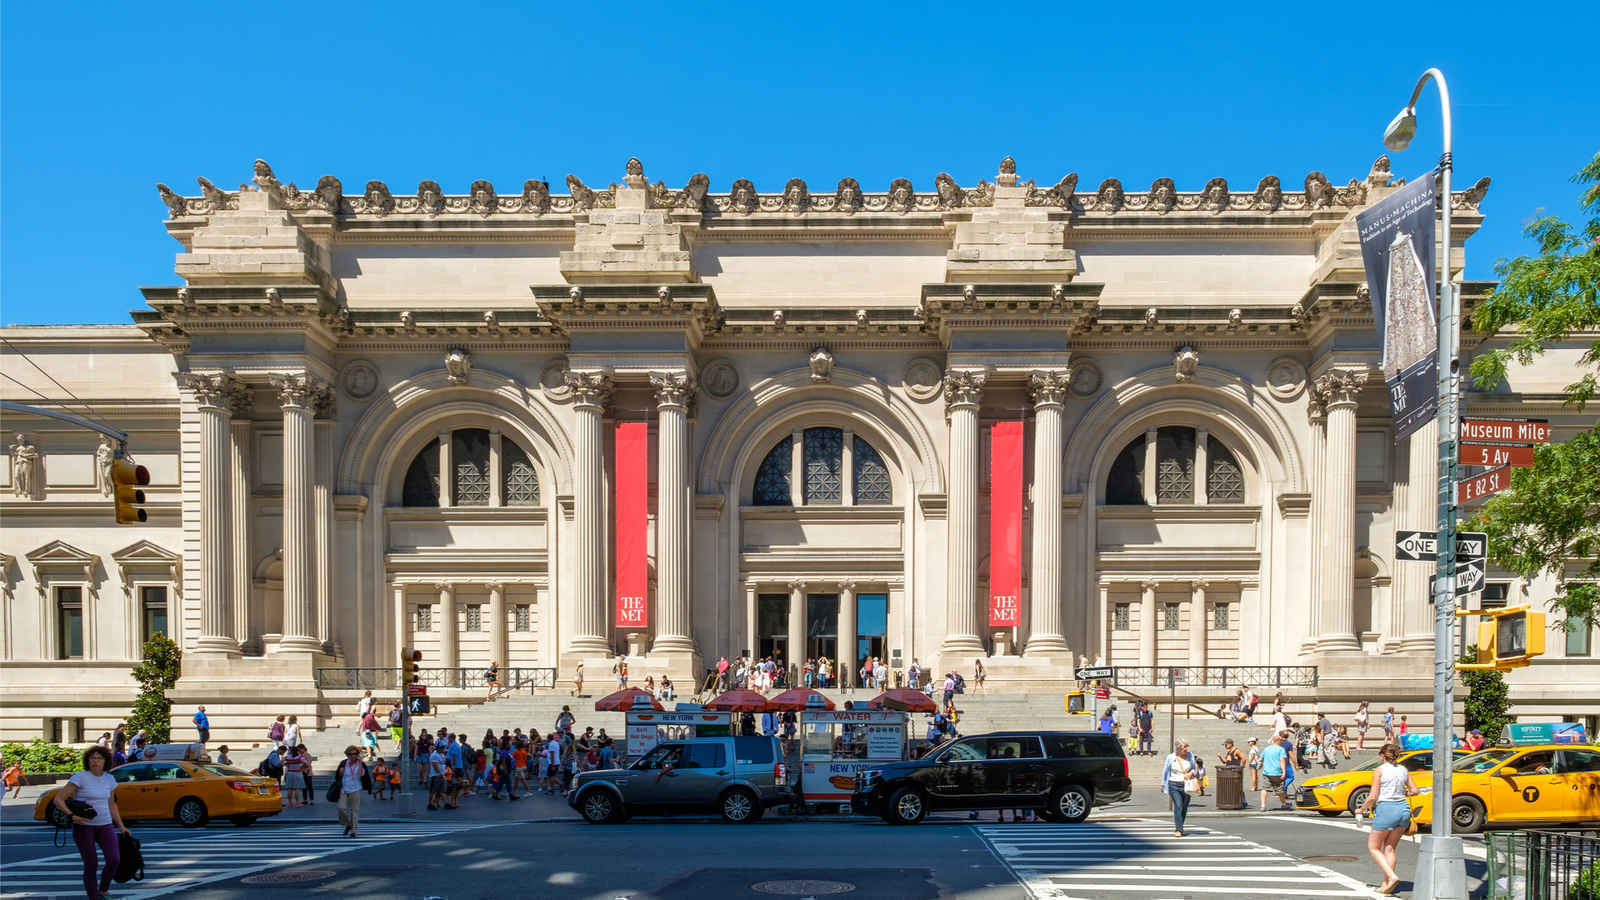 Metropolitan Museum of Art on the Upper East Side of Manhattan, New York